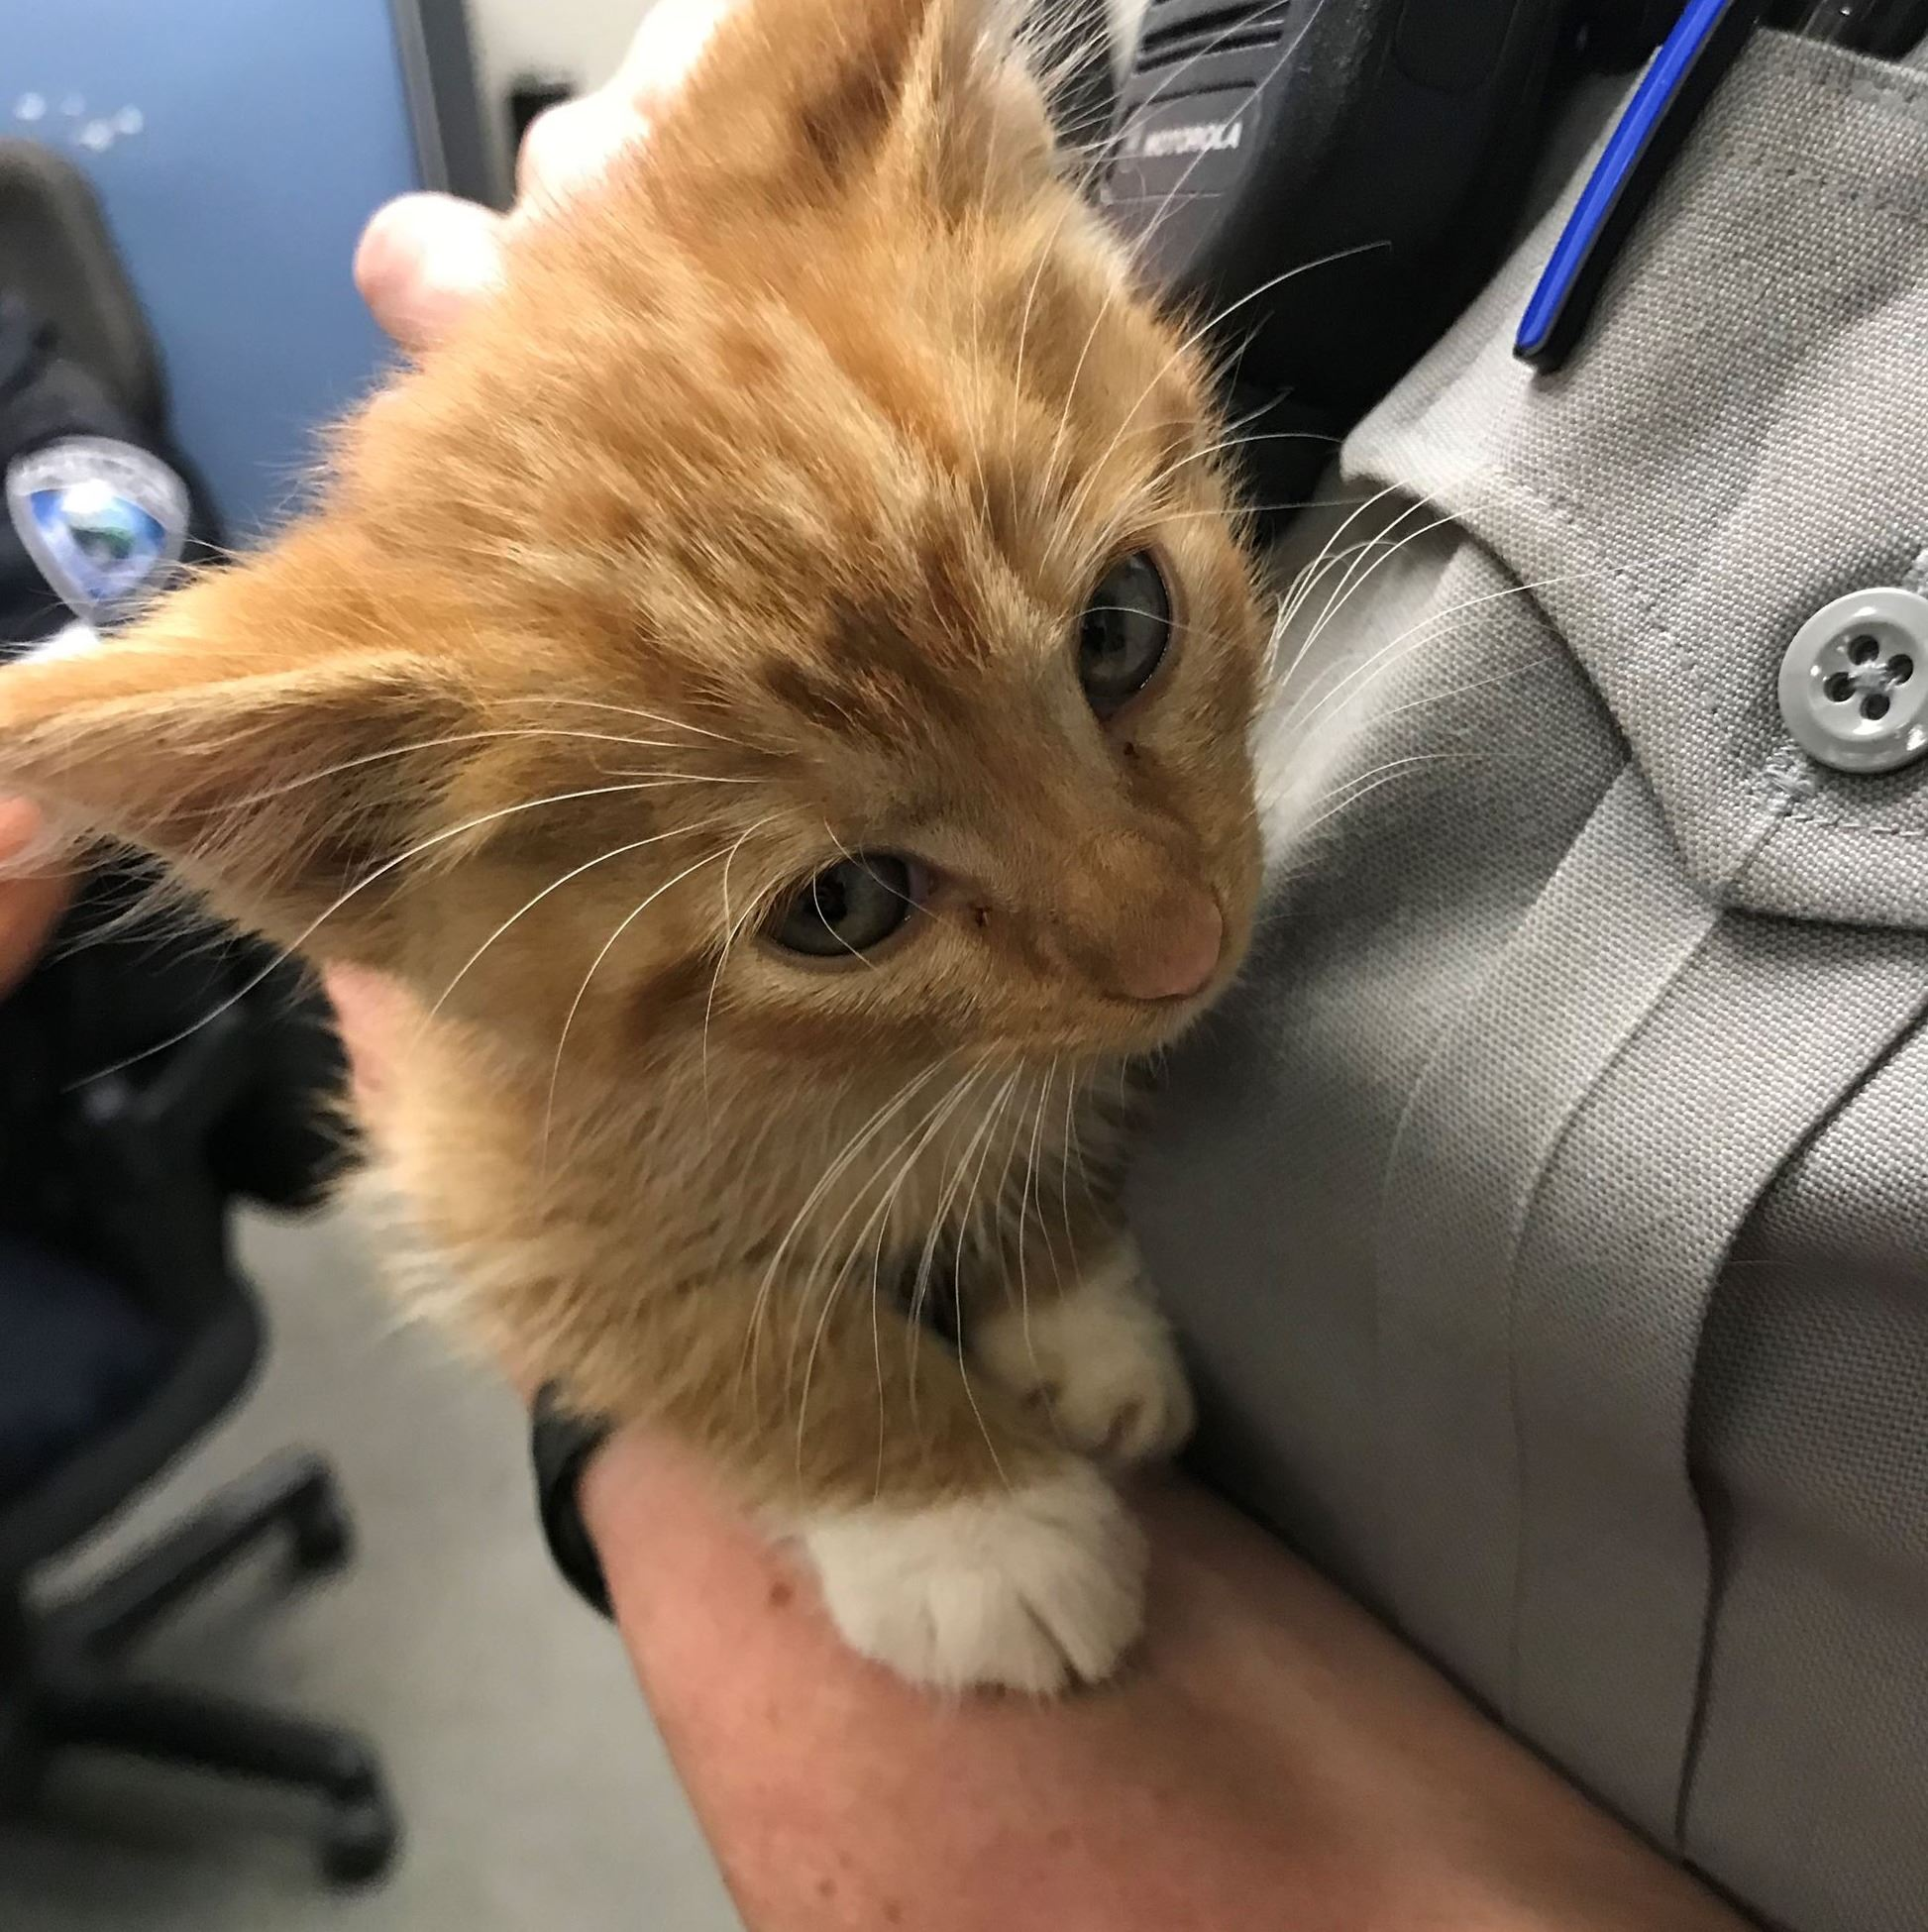 Orange kitten being held by animal control officer